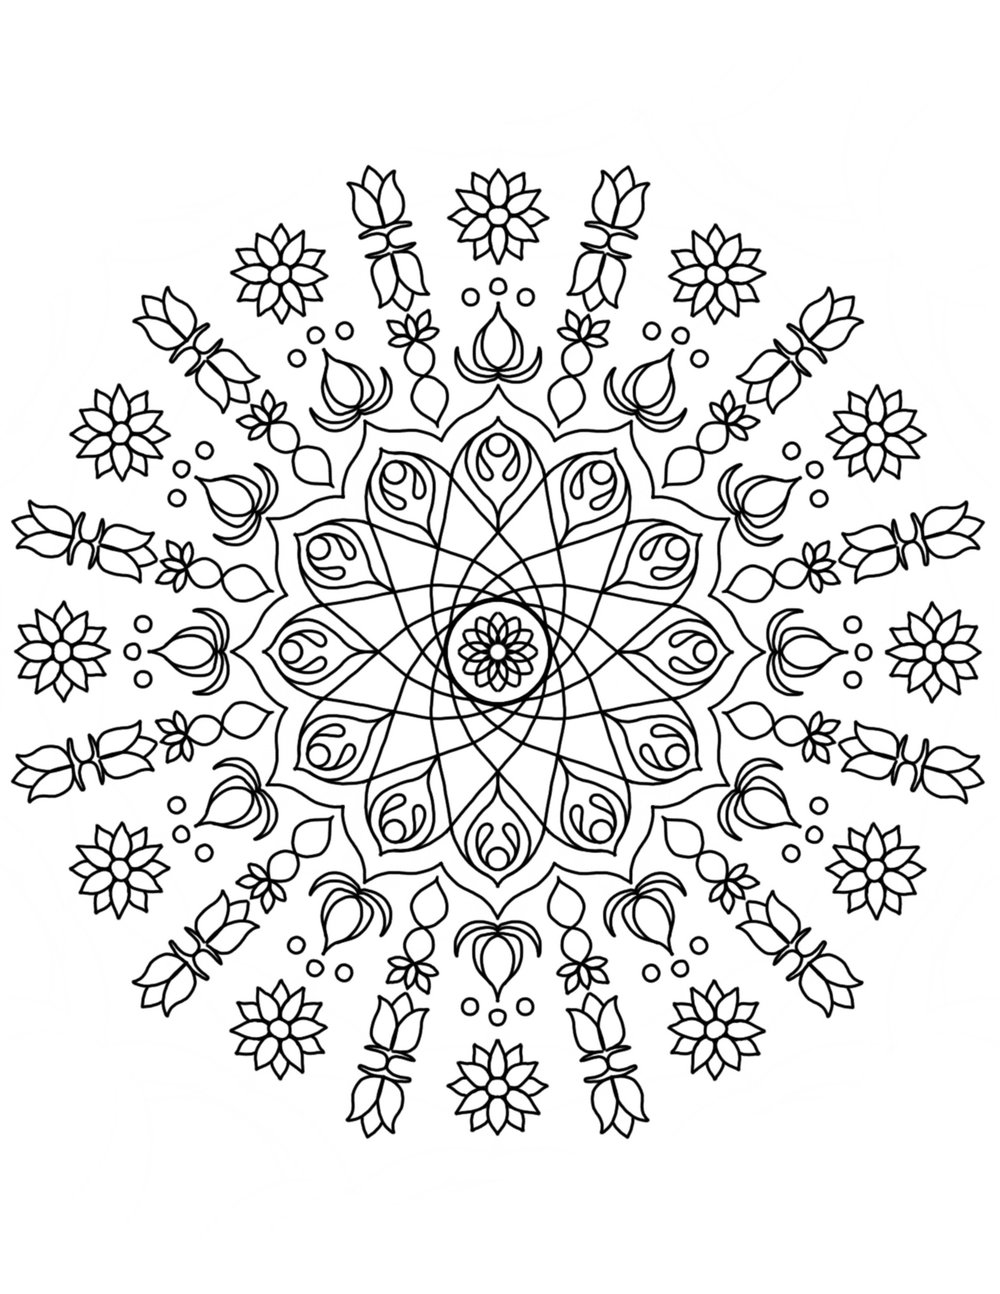 I also draw a variety of mandala coloring pages including a set called  Floral Mandalas